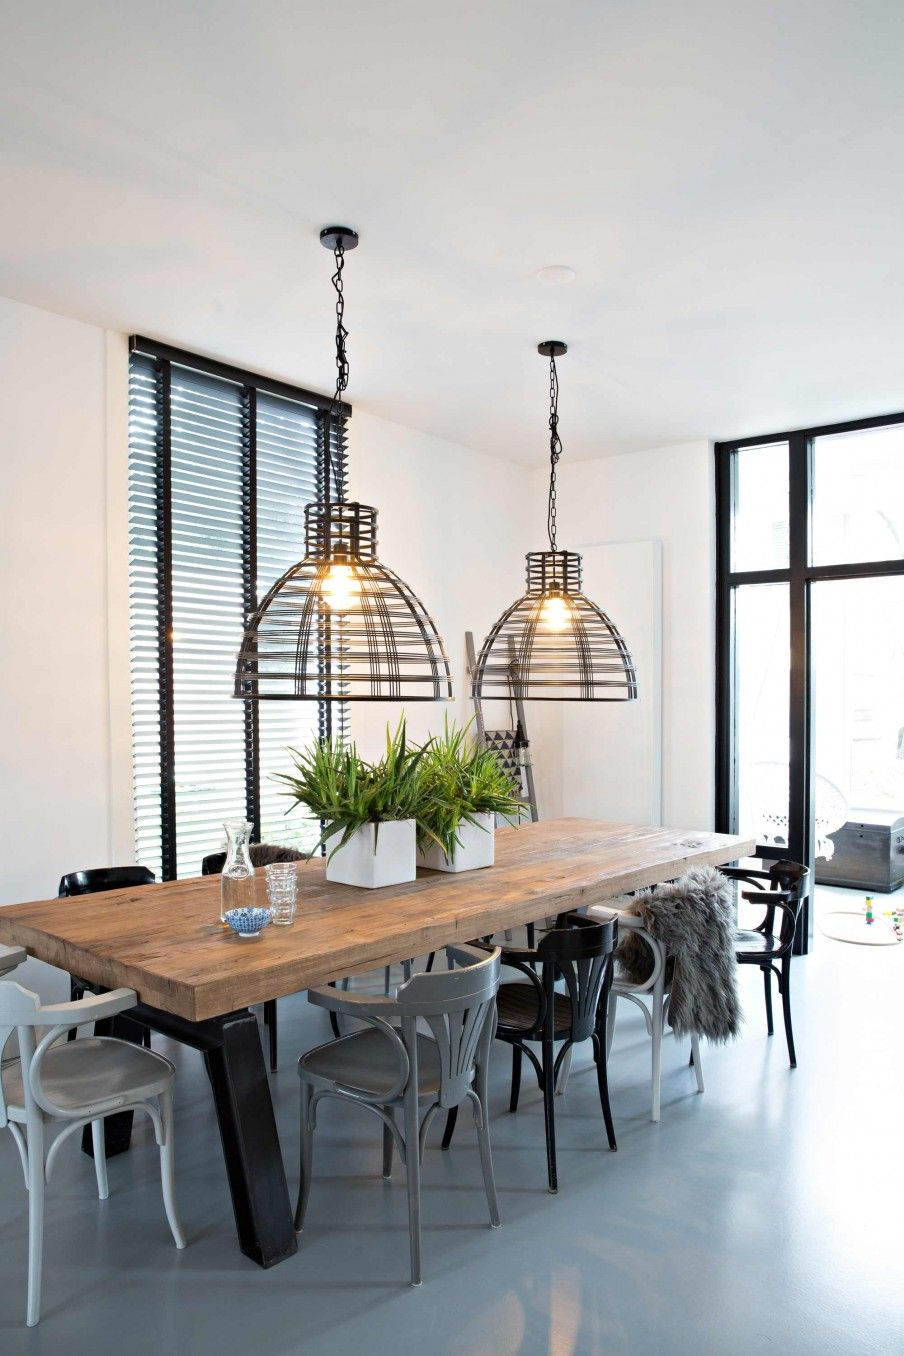 Bekend Houten eettafel met industriële lampen | Wooden dining table and #TI76